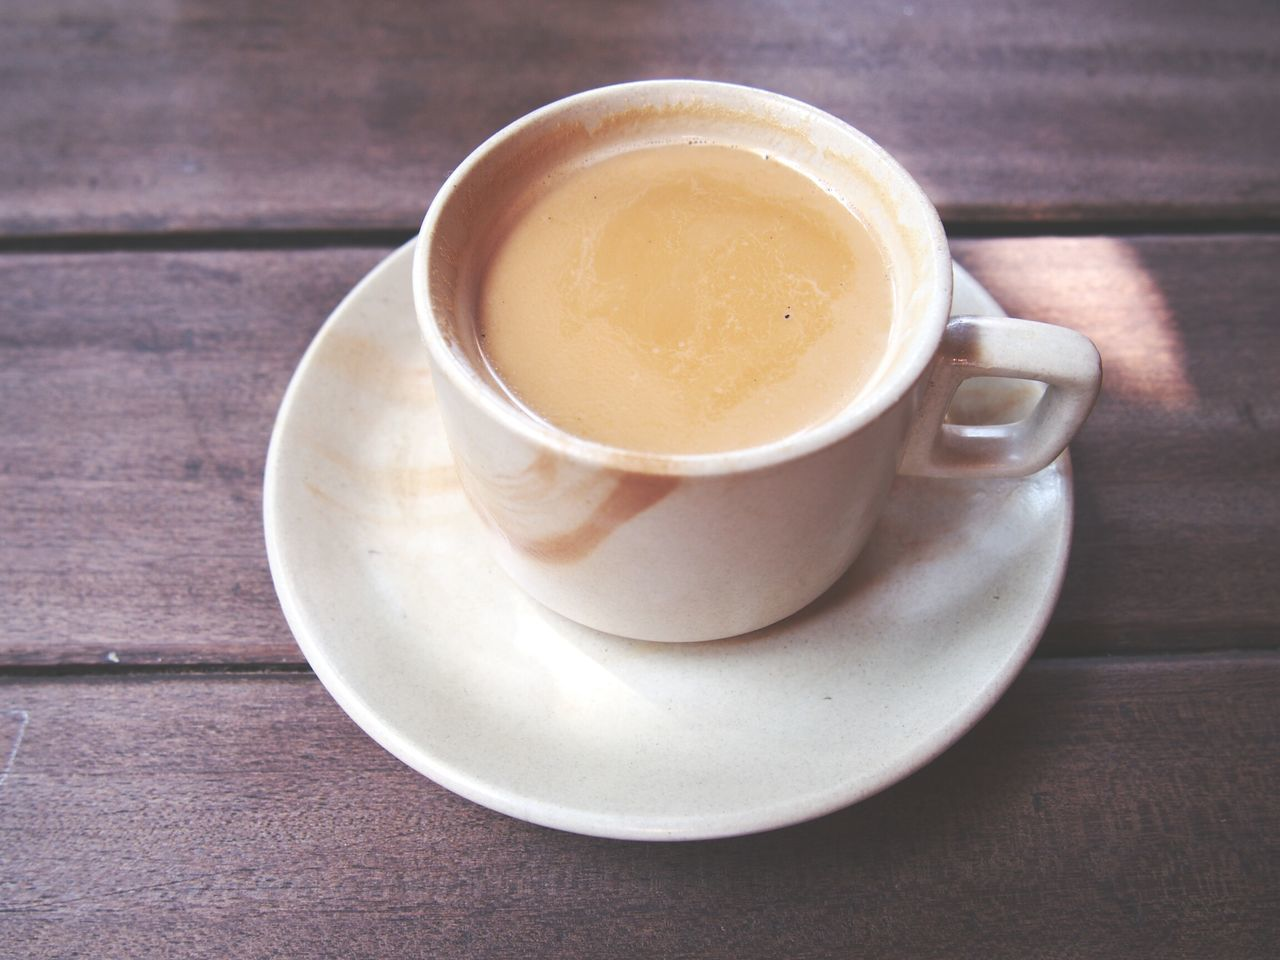 Drink Coffee - Drink Coffee Cup Table Indoors  No People Coffee Break Latte Cappuccino Tea - Hot Drink Mocha Cafe Food And Drink MasalaTea Relax Time